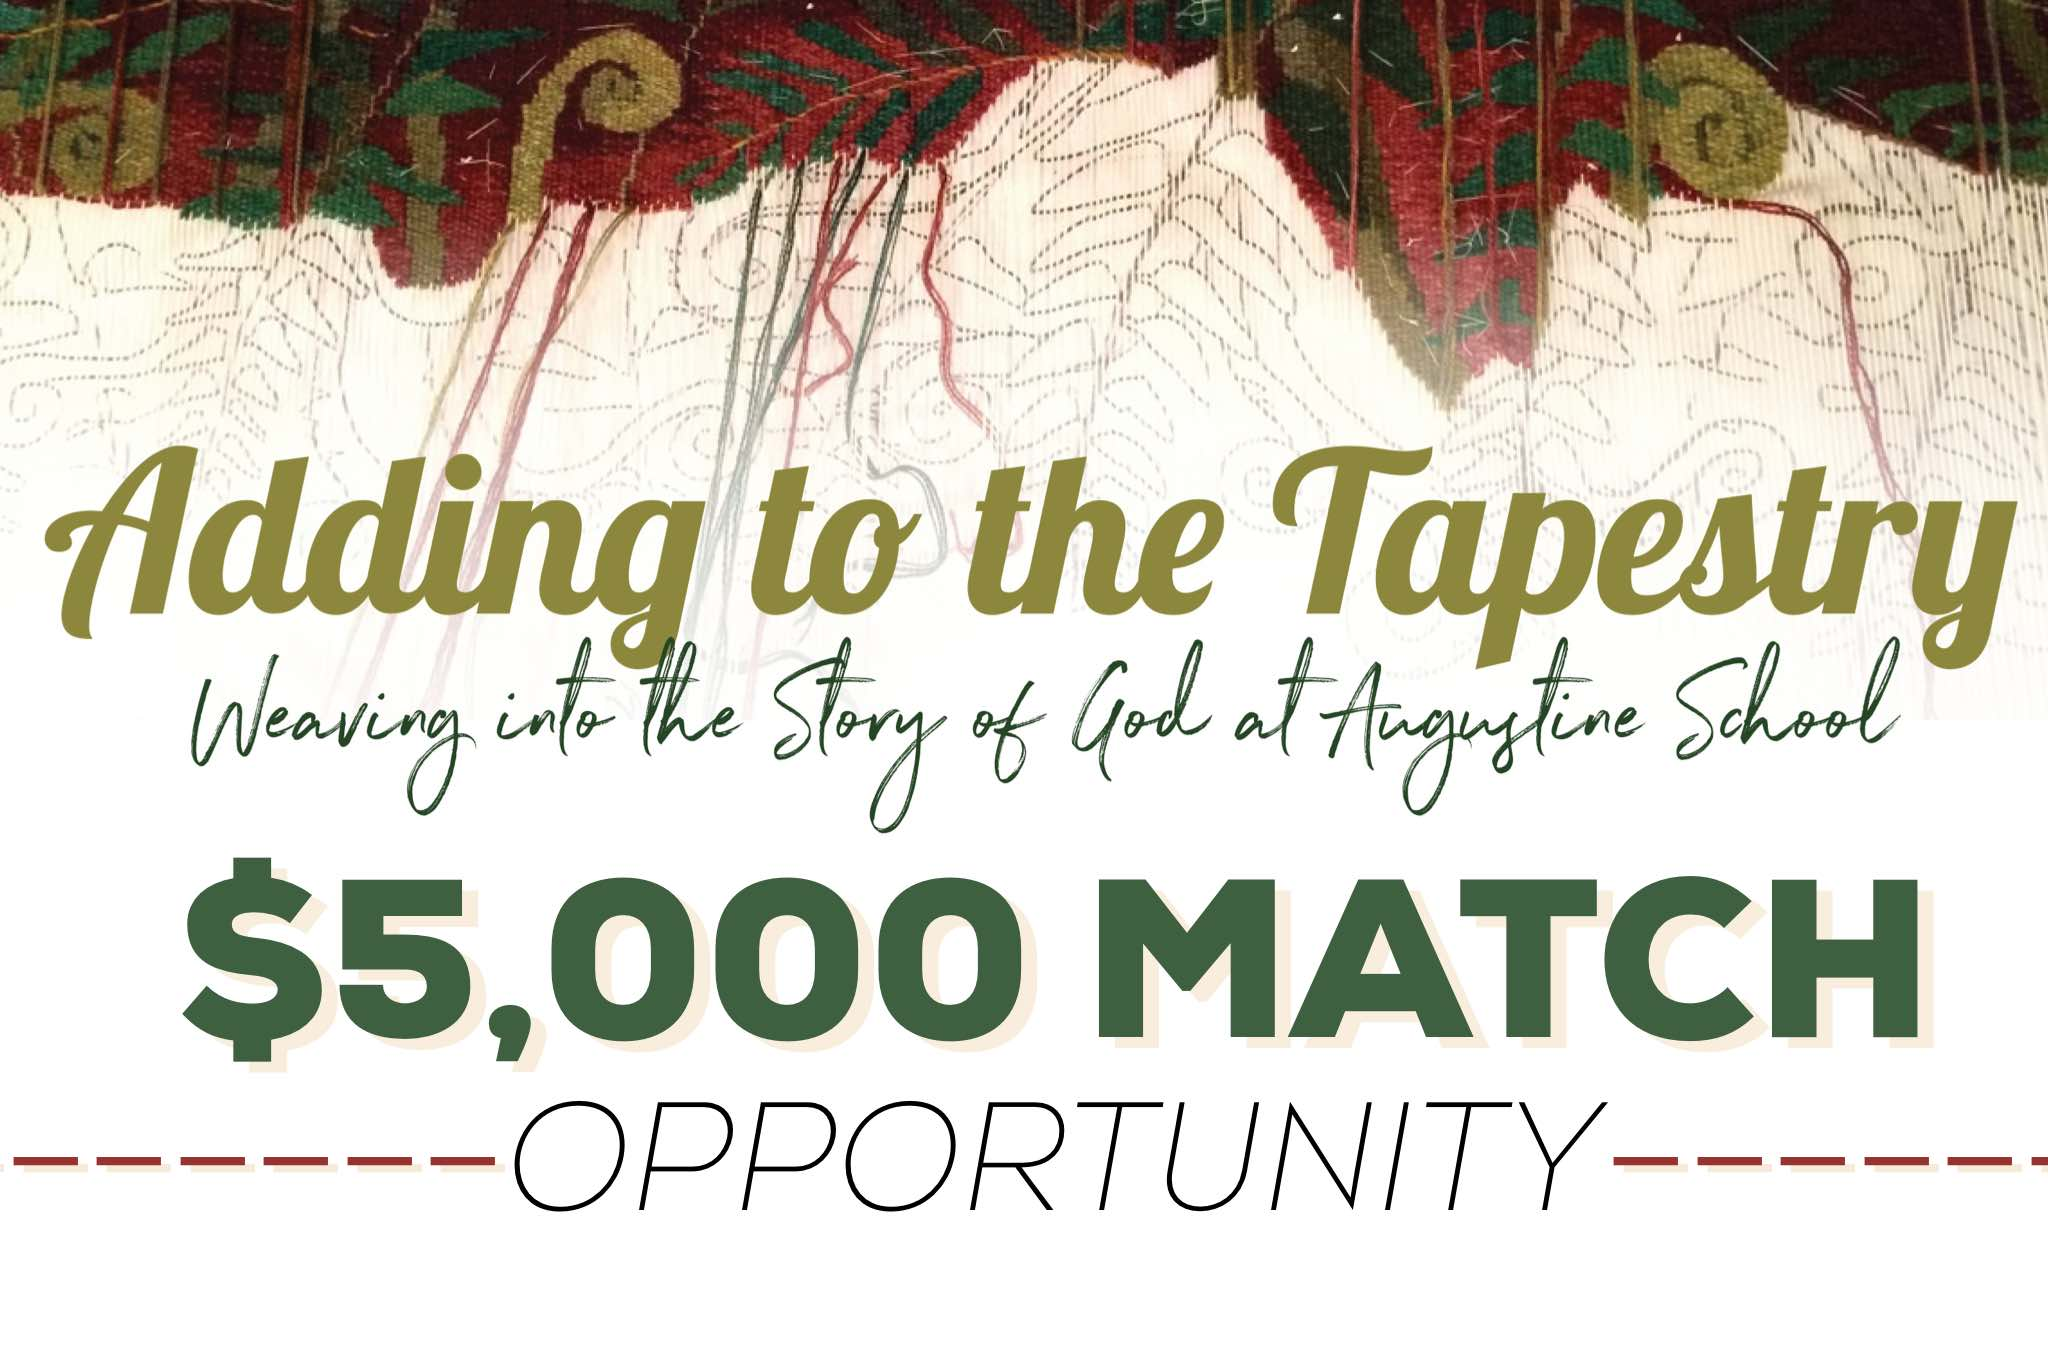 Adding to the Tapestry: $5000 Match Opportunity!